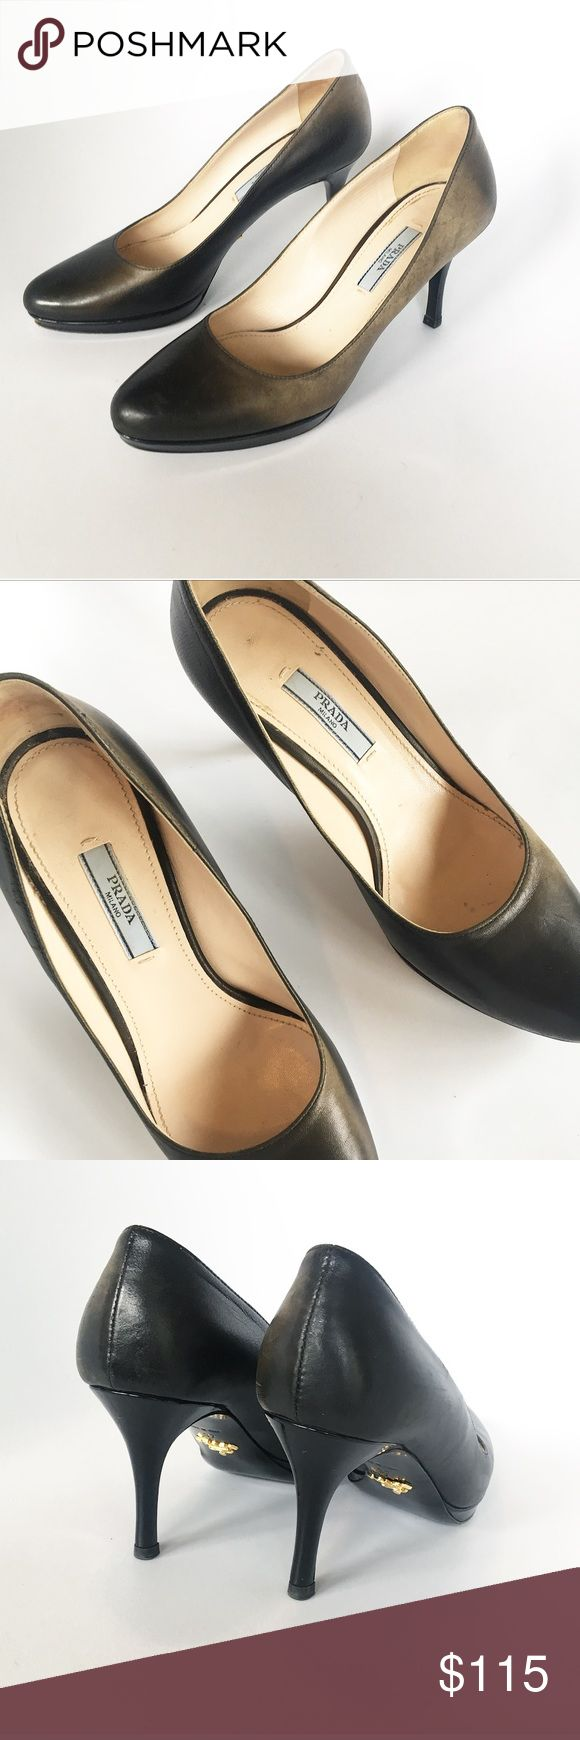 Prada hombre heels. Size 37 Prada hombre heels. Size 37. Brownish black and green. Photos show accurate color. Soft leather. Prada Shoes Heels